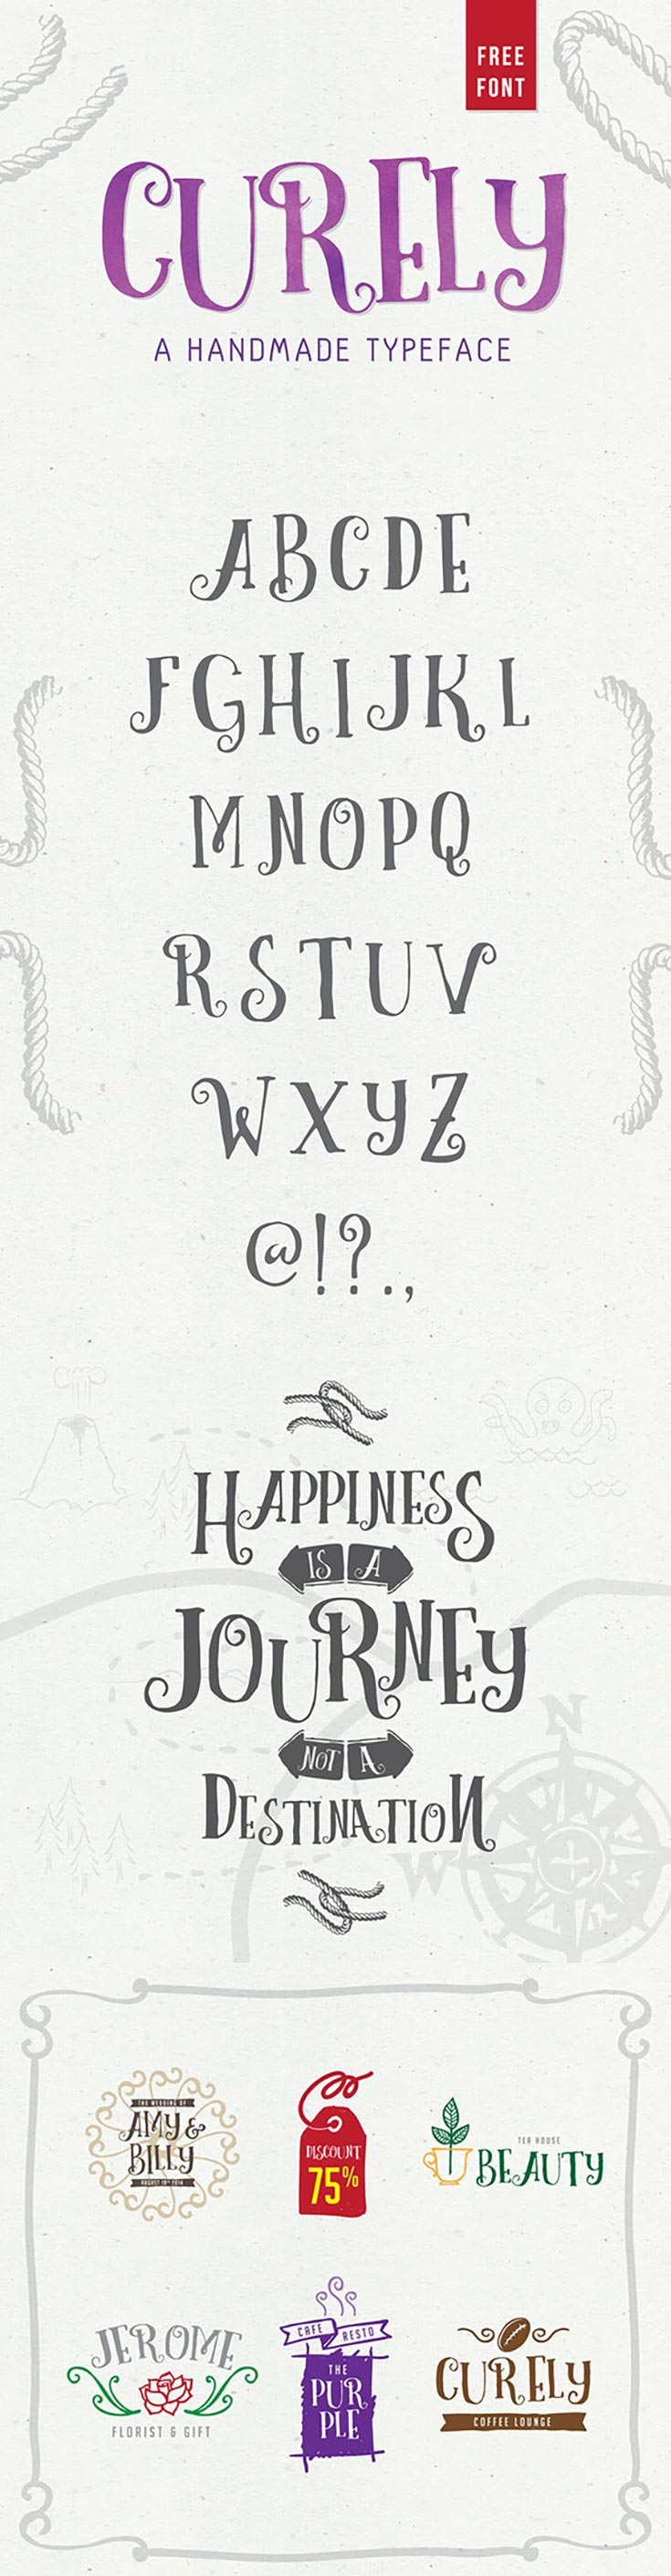 Free Curely Handmade Decorative Font Is Inspired From A Y Stuffs And Cuteness Overload In Every